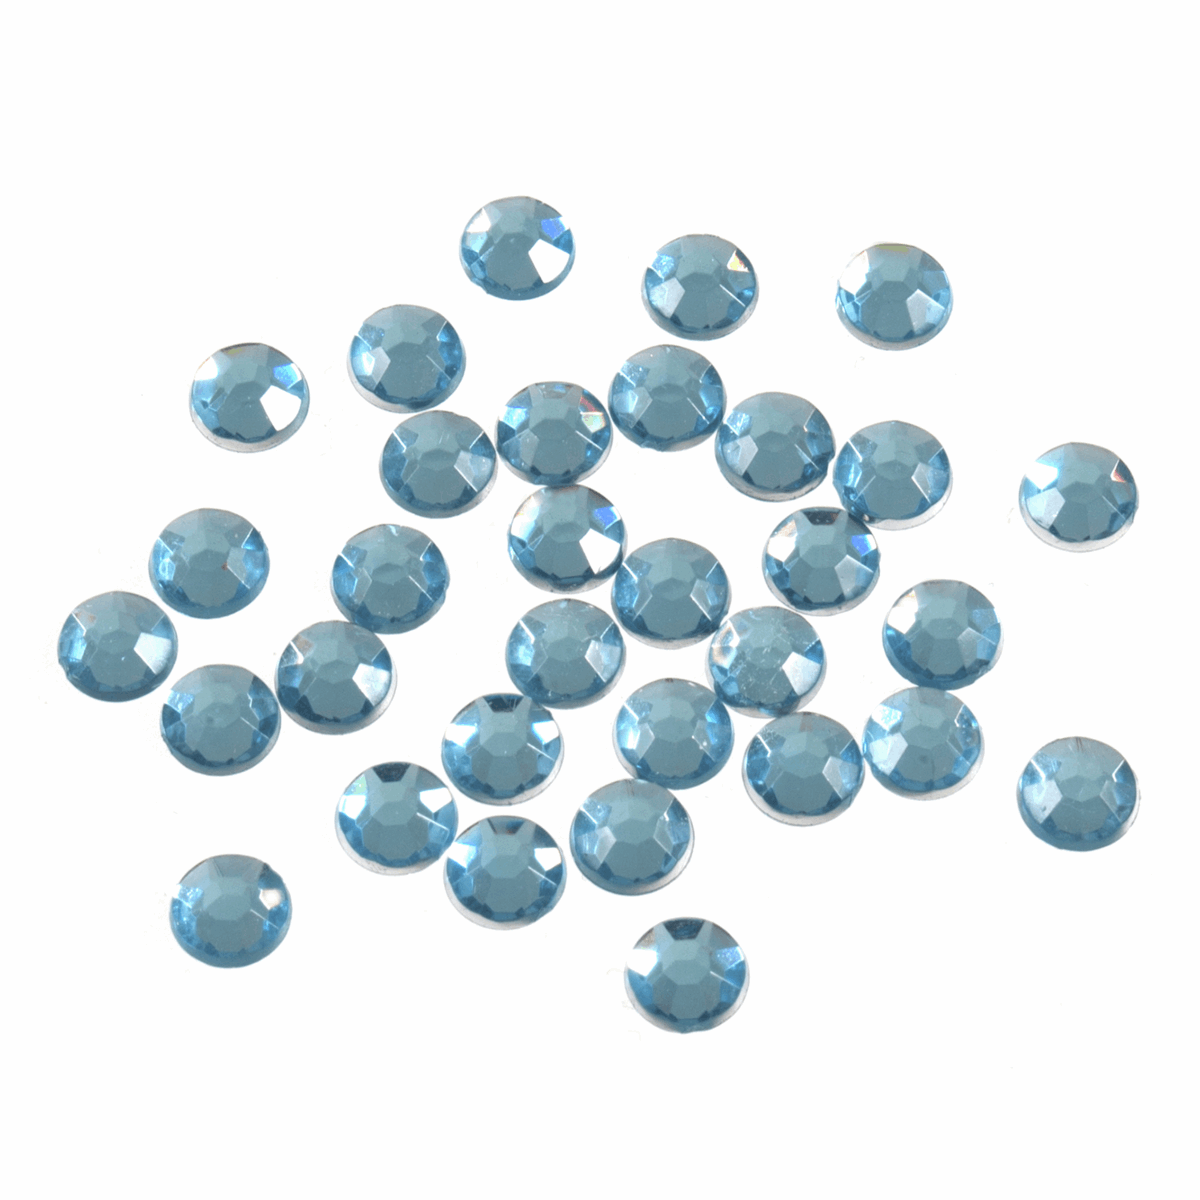 Picture of Acrylic Stones: Glue-On: Round: Large-7mm: Blue